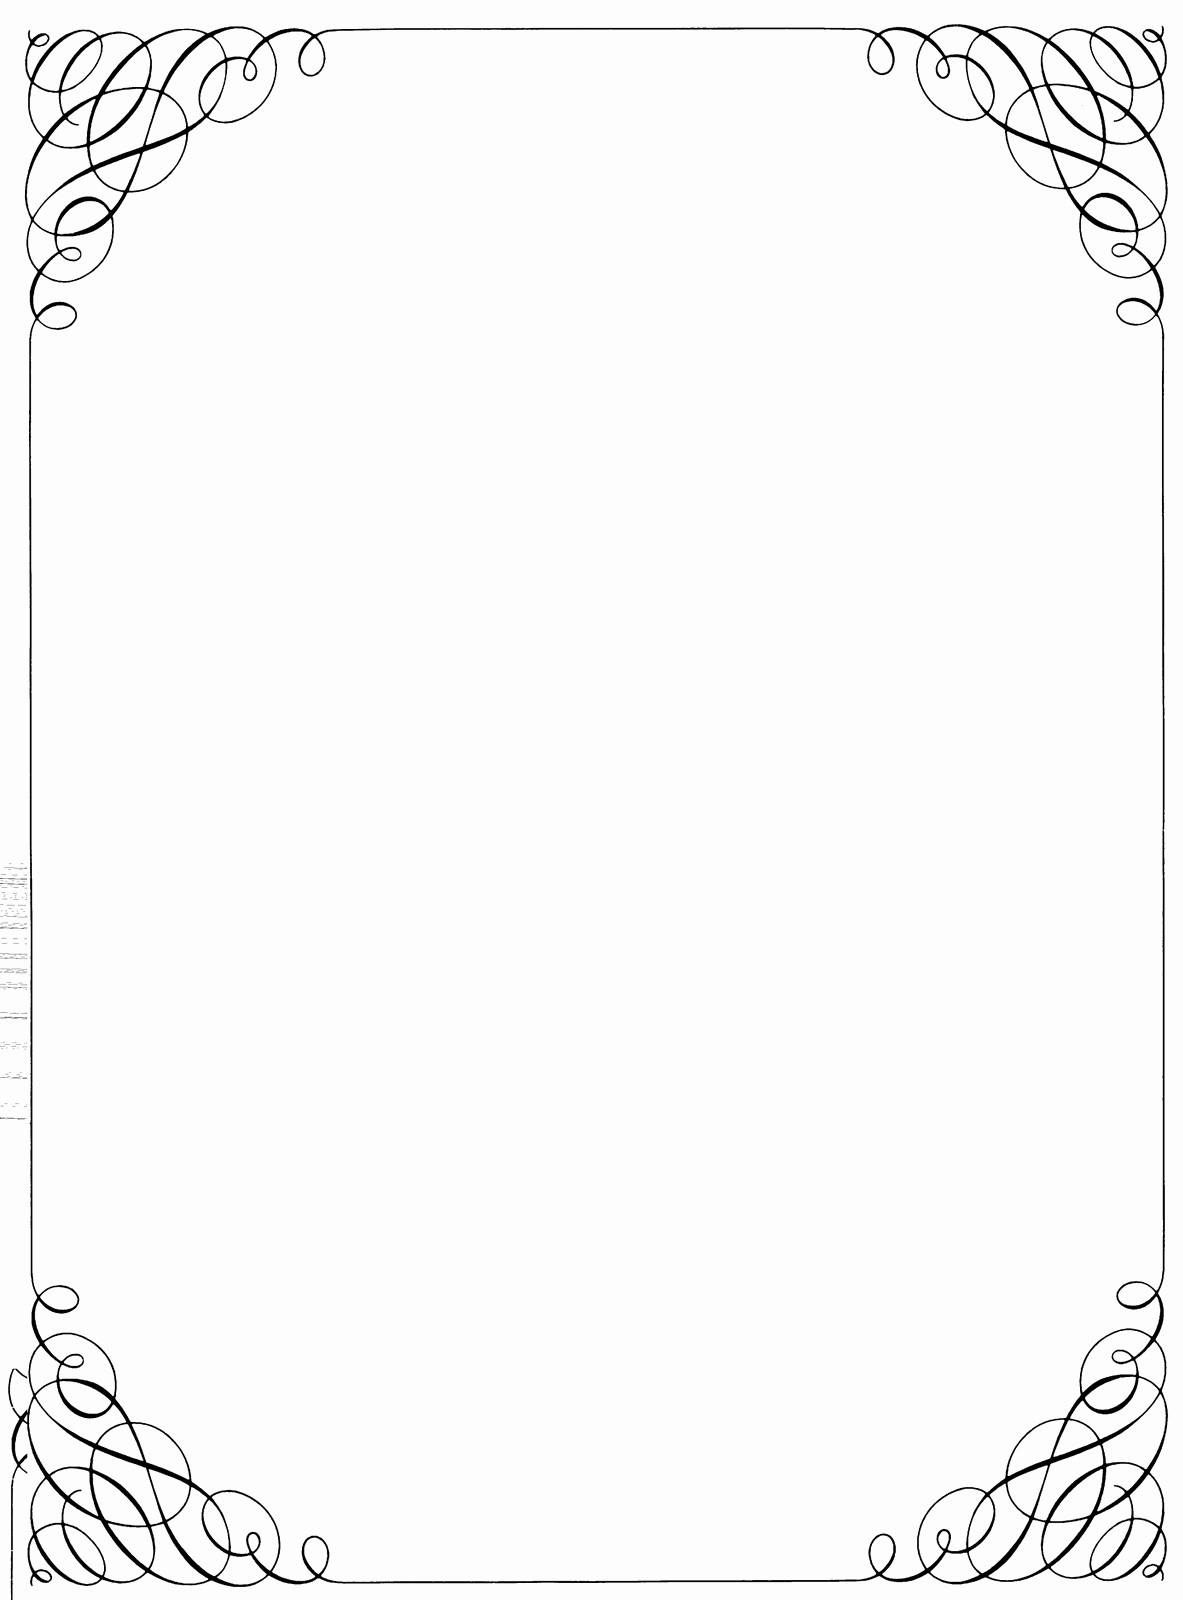 Wedding Borders for Microsoft Word Awesome Free Border Clipart for Word & Look at Clip Art